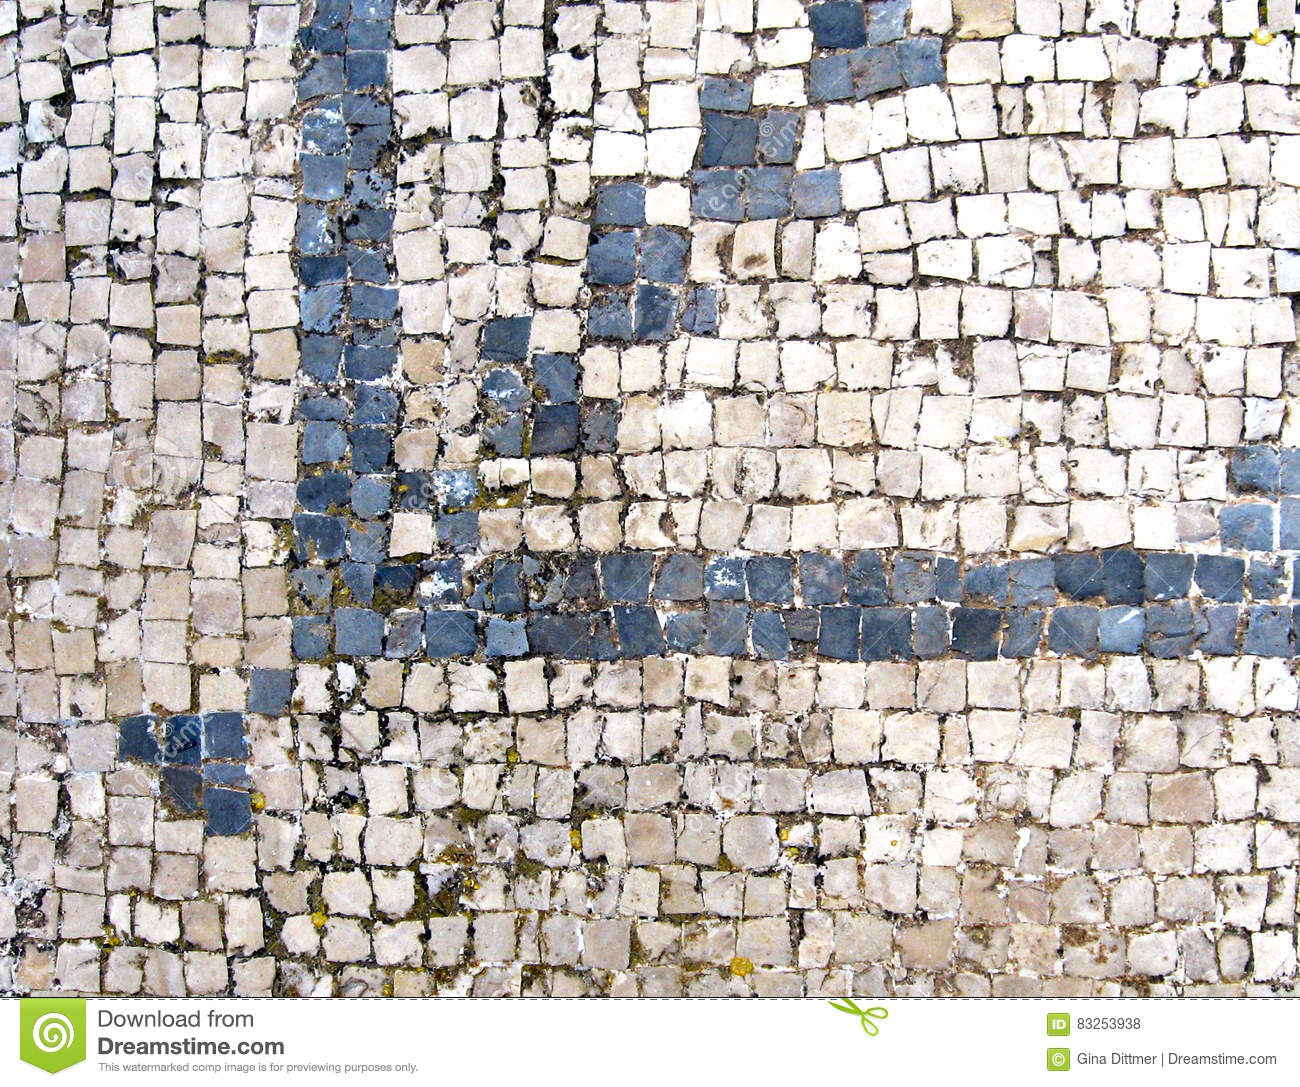 Ancient Roman Blue And White Mosaic Floor Tiles In Archaeological